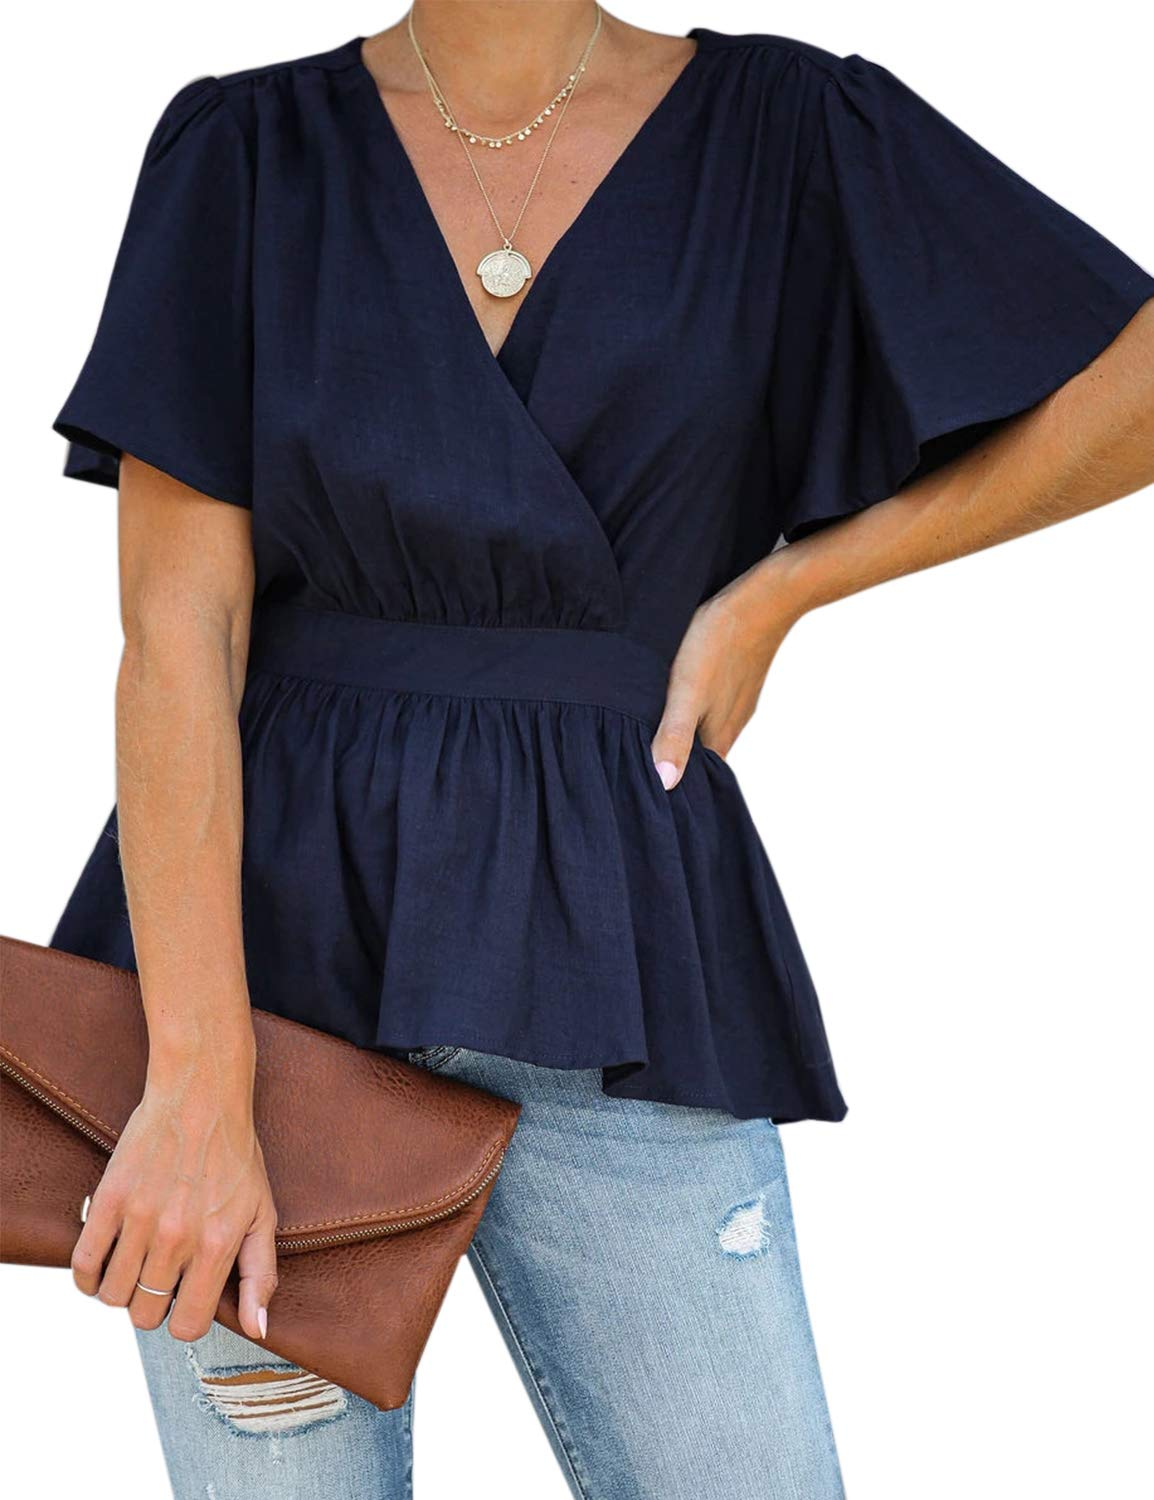 MAY Women's Short Sleeve V Neck Top Wrap Peplum Pleated Blouse Shirt Blue